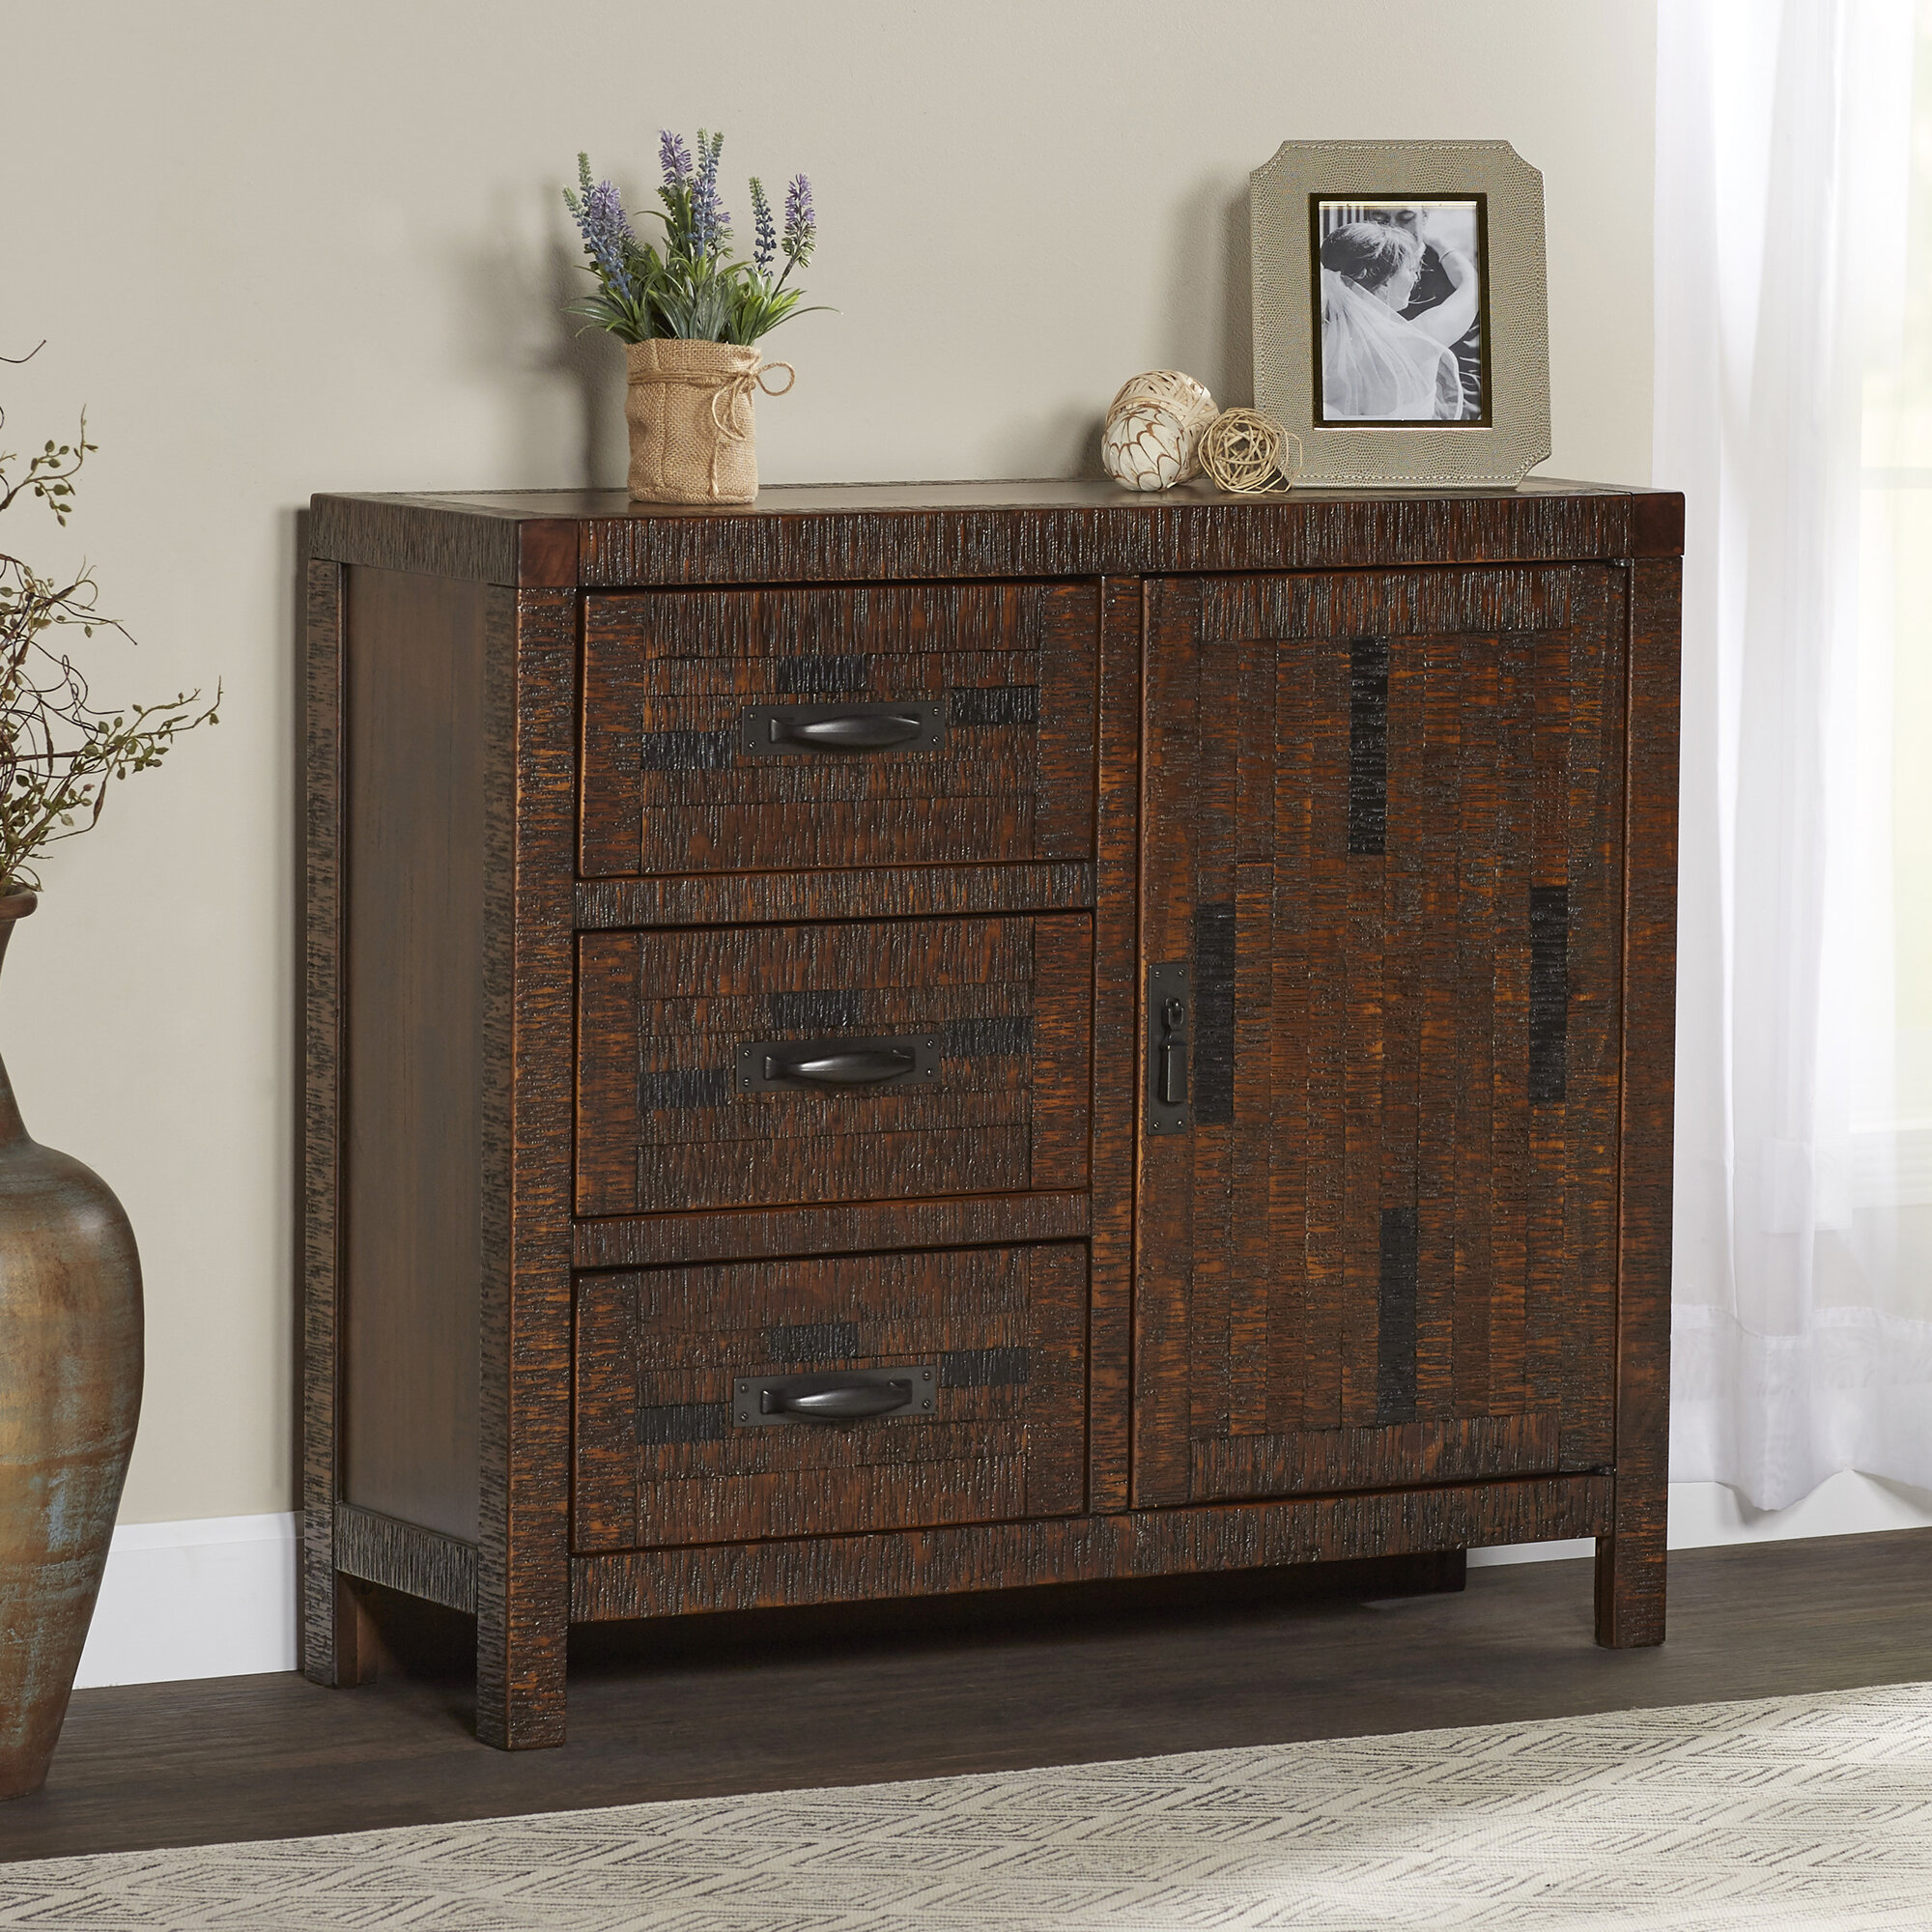 drawer cabinet index fixtures d cfm silver w in buffet elegant paint h drawers antique lighting reflexion elite x doors